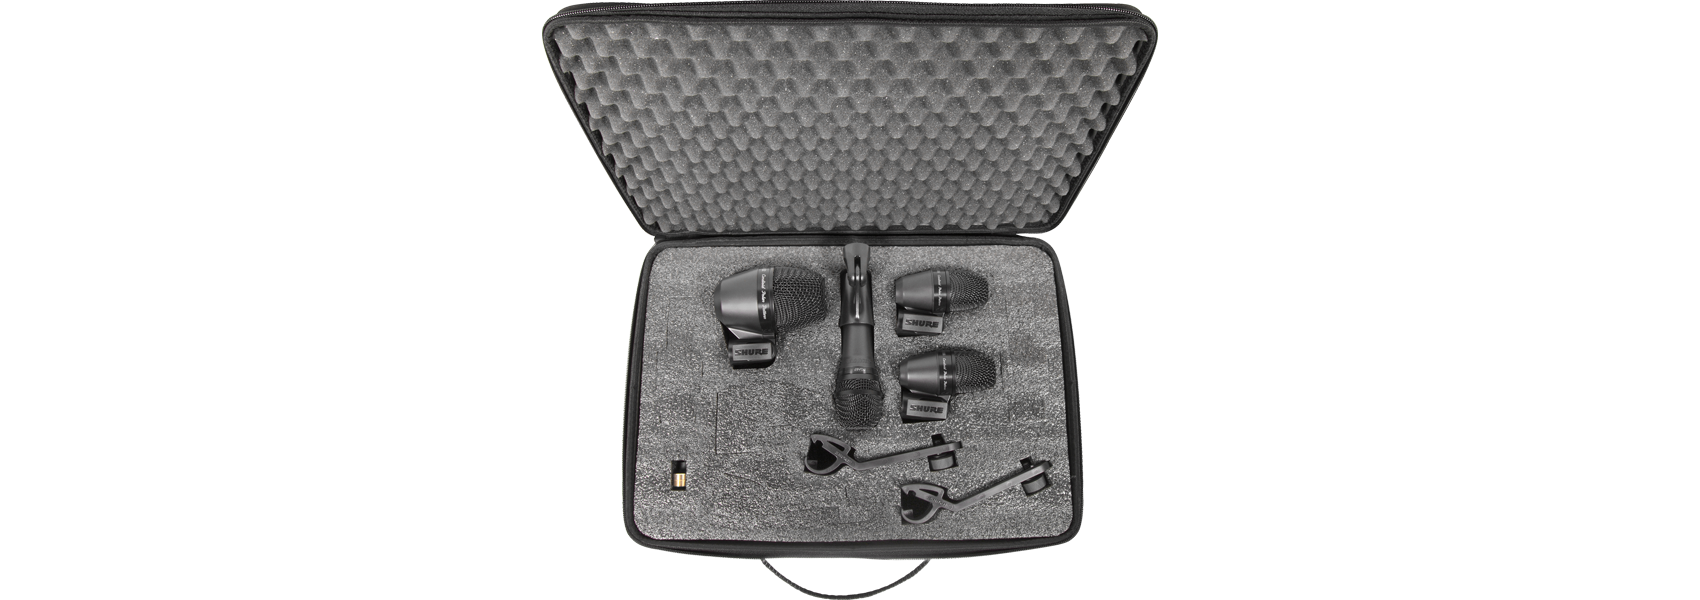 Illustration Shure PG Alta Drum Microphone Kit 4 – The essential package